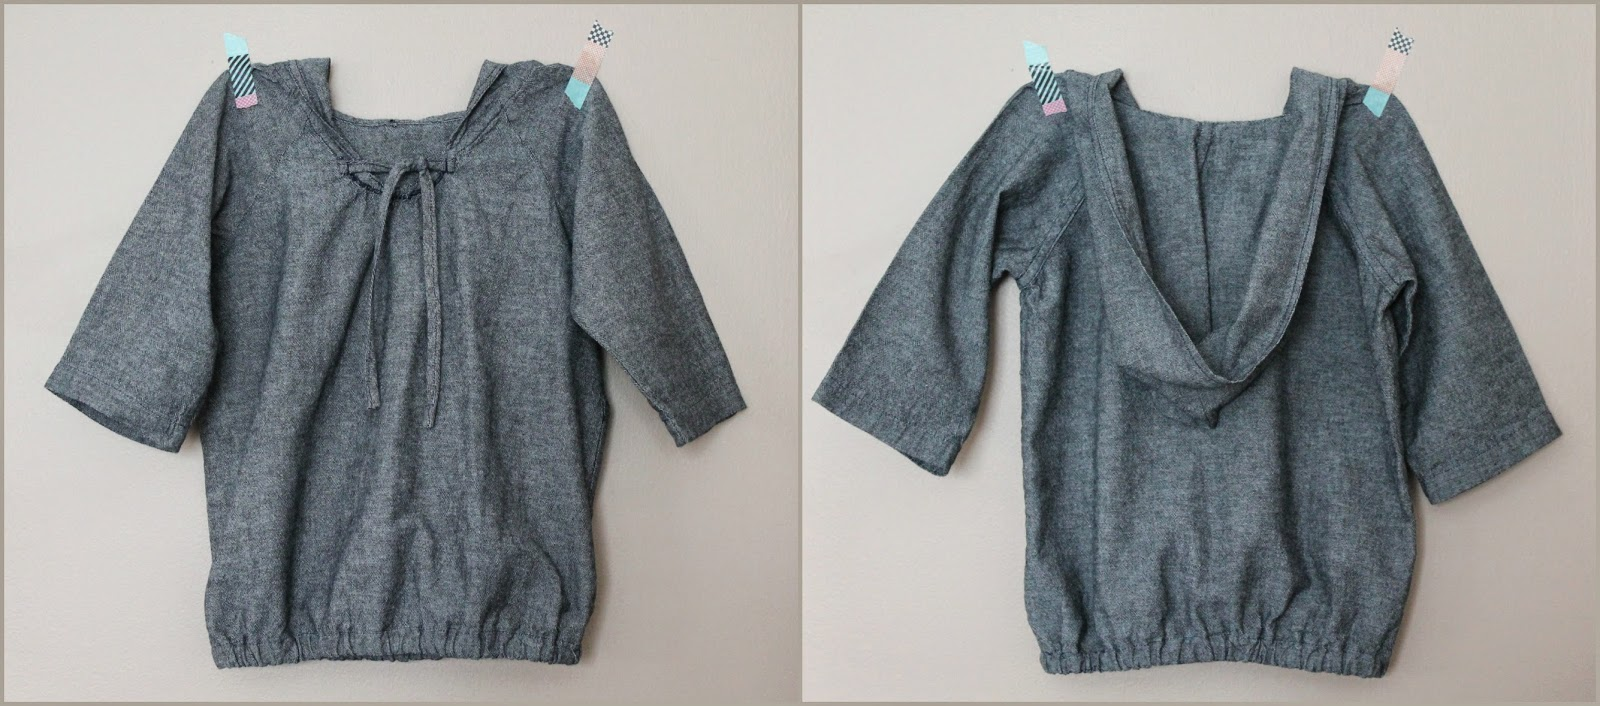 Sewing from Happy Homemade, Volume 2: Sew Chic Kids -- The Pull Over Parka (Pattern S) in Chambray | The Inspired Wren